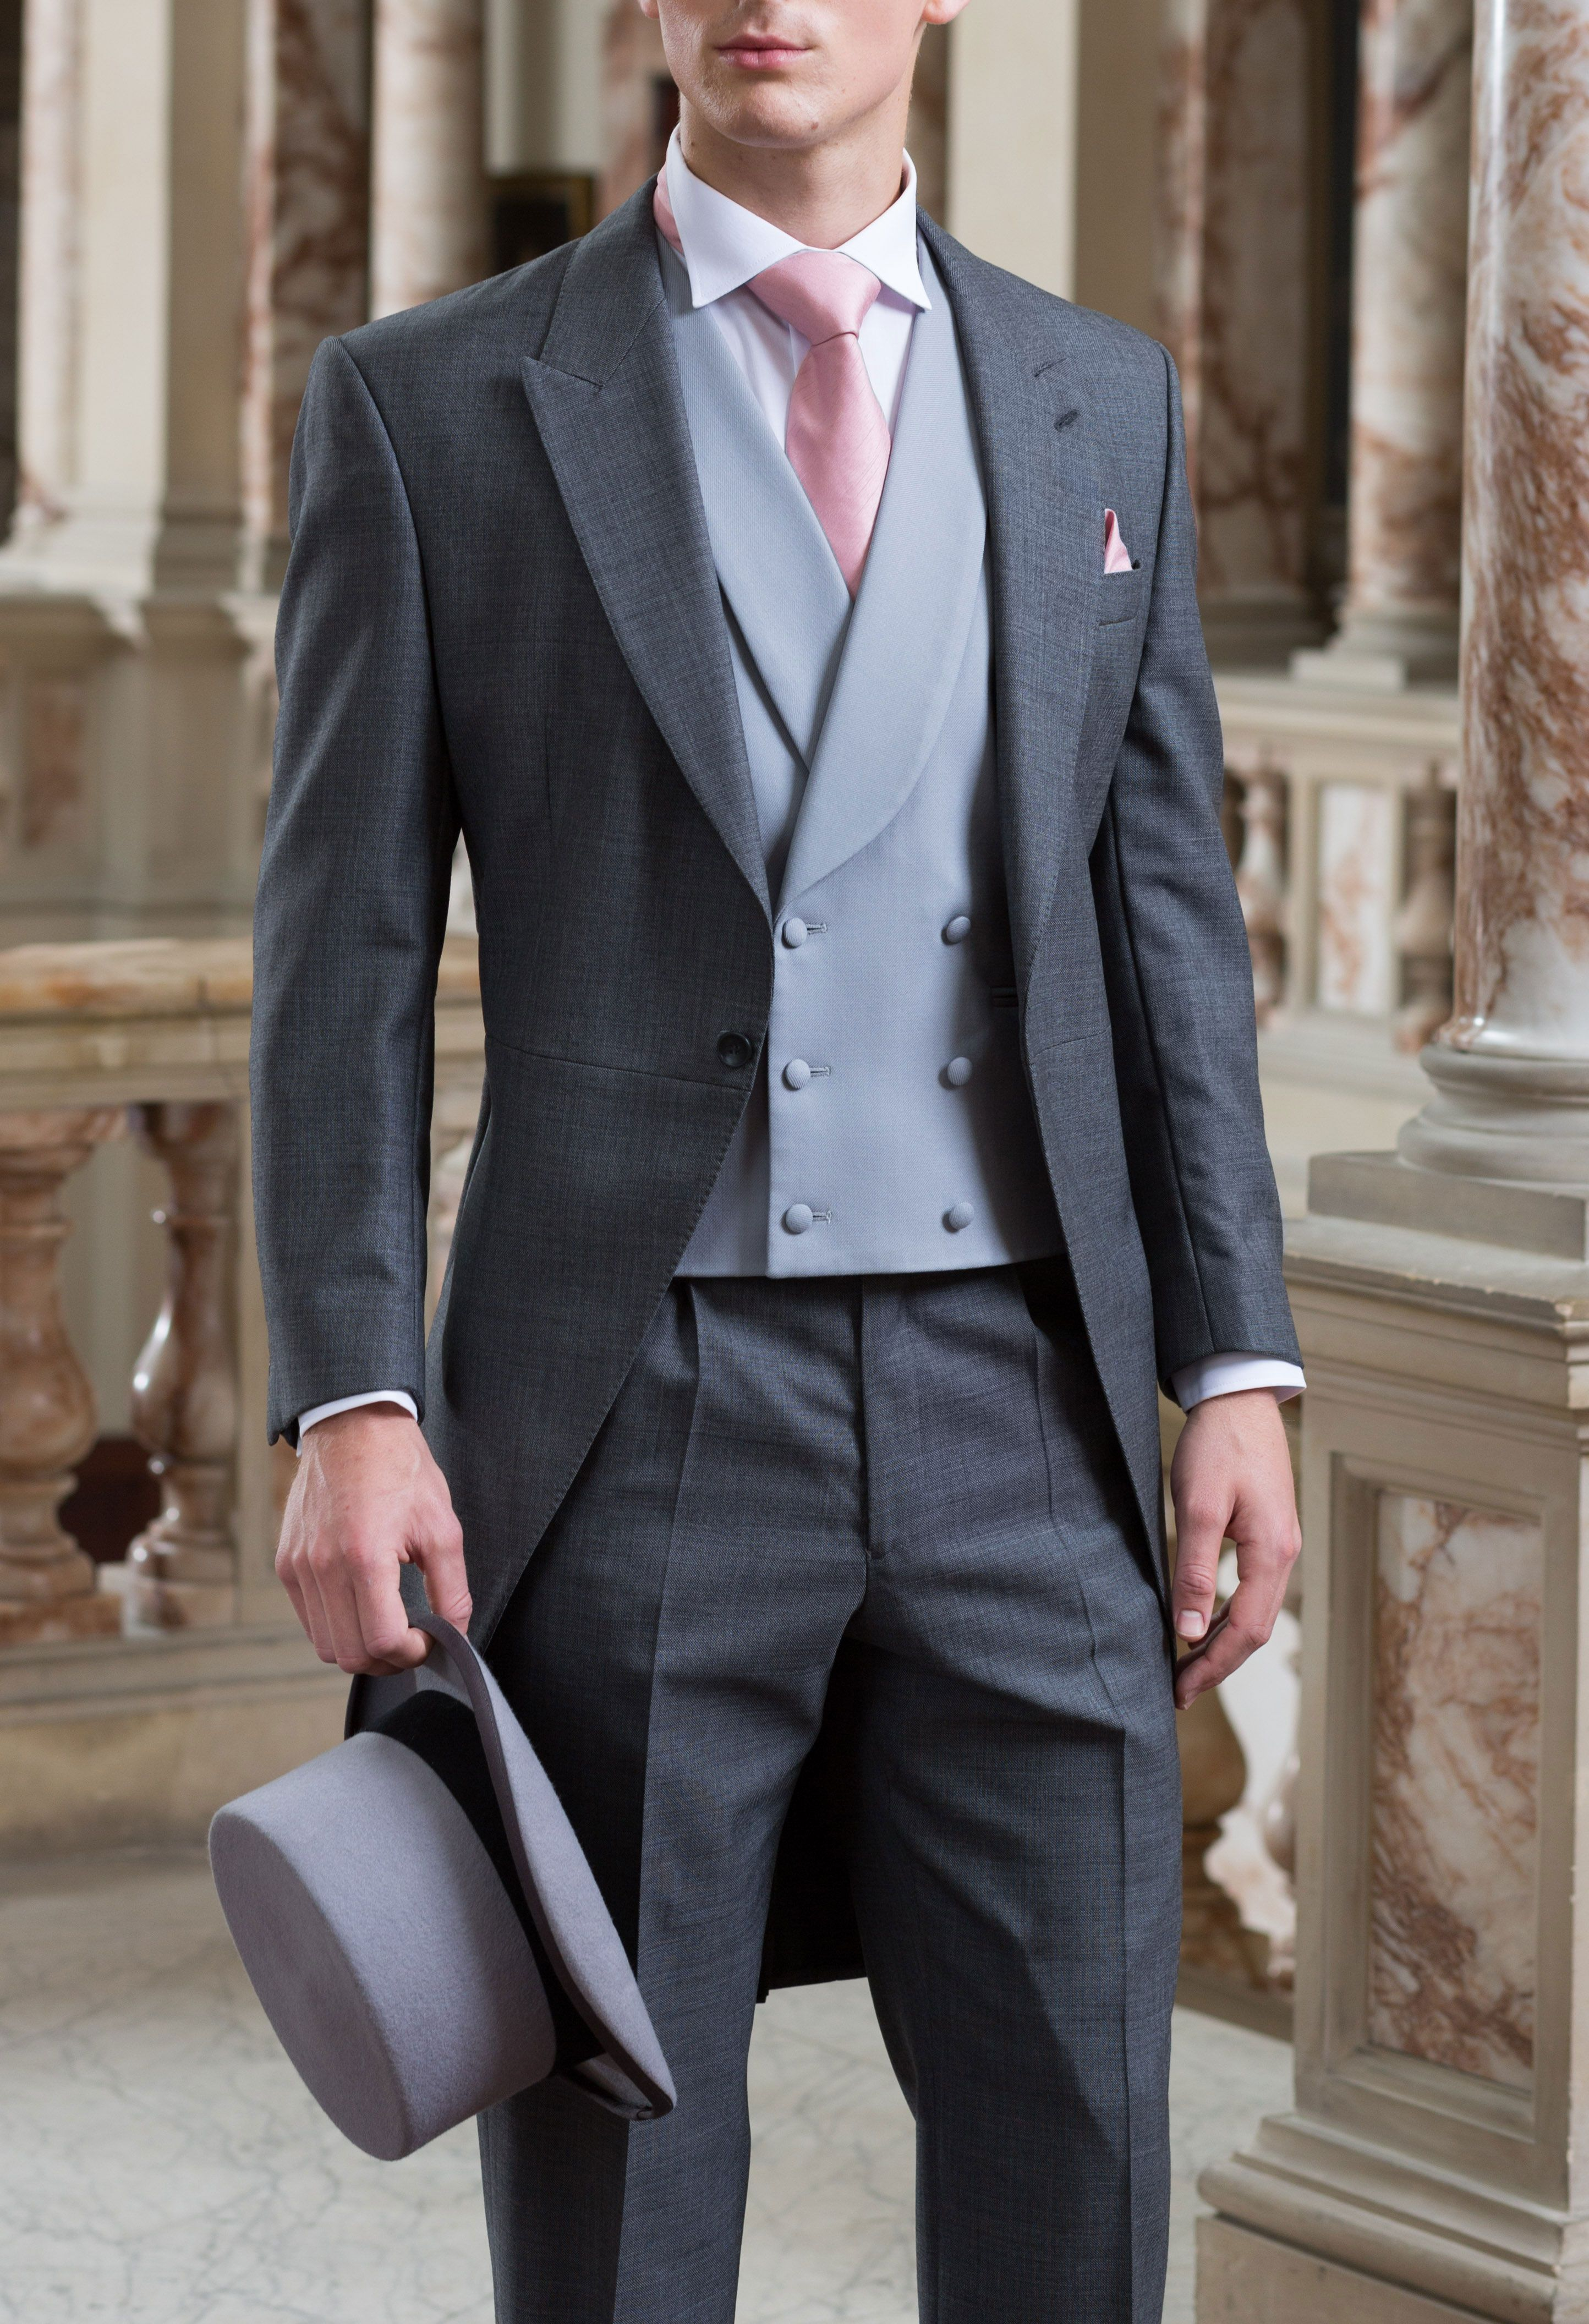 Top Hat and Grey Tailcoat with pale pink accessories from